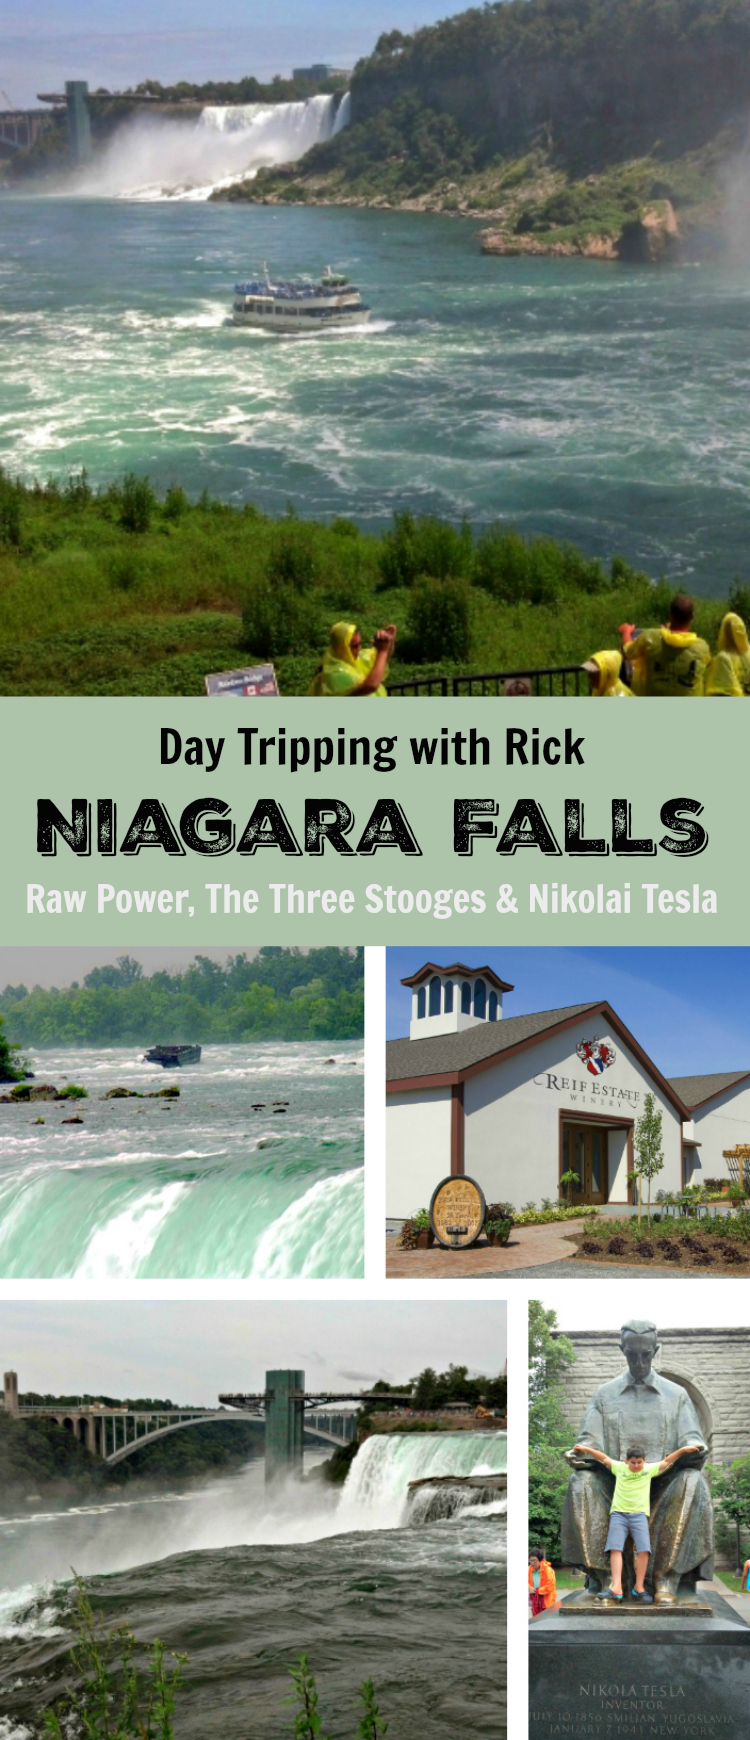 A day trip through Niagara Falls by bike.